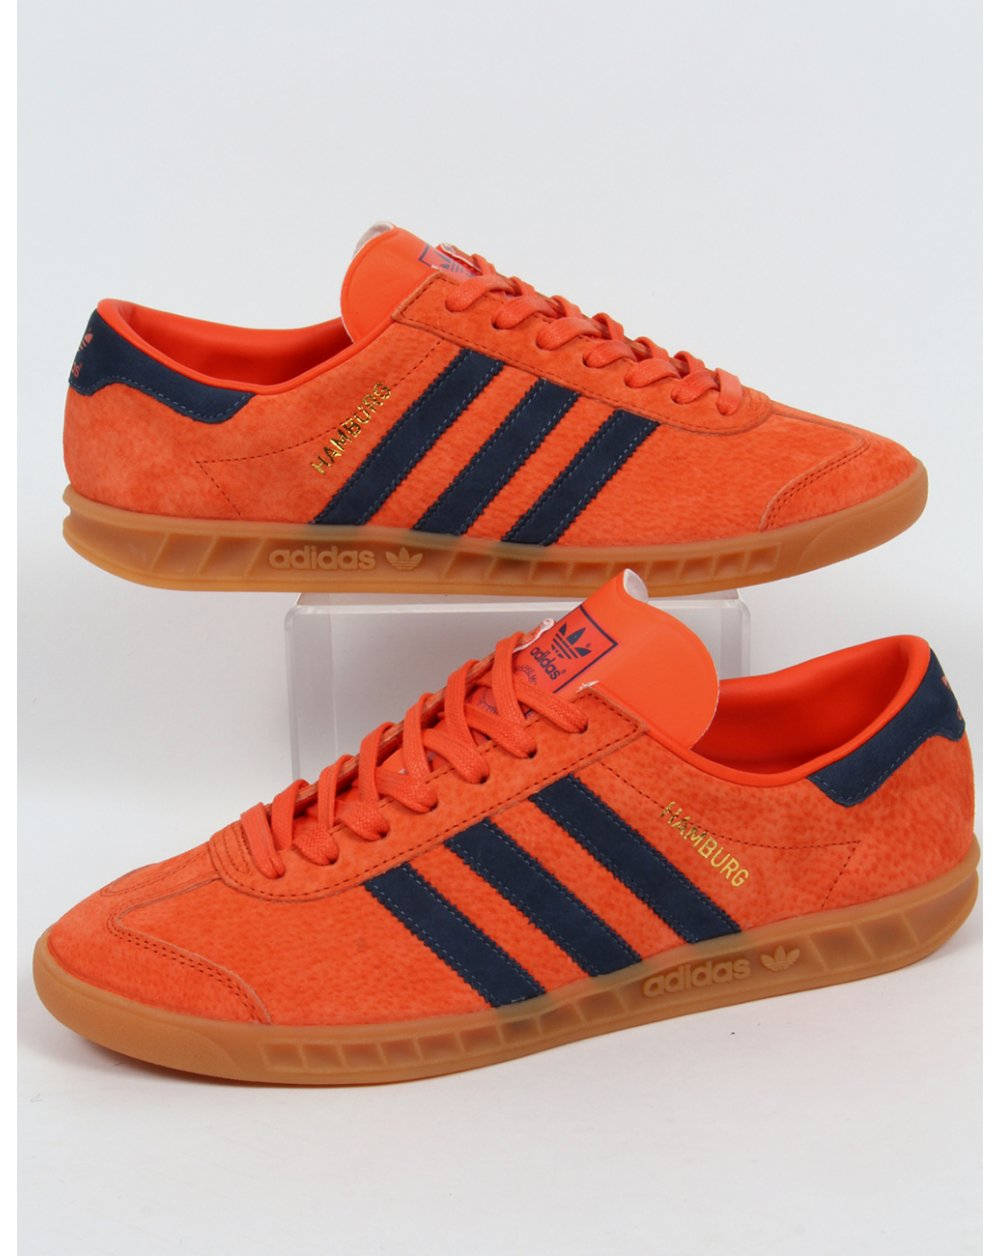 adidas Trainers Adidas Hamburg Trainers Orange navy 652373d39113